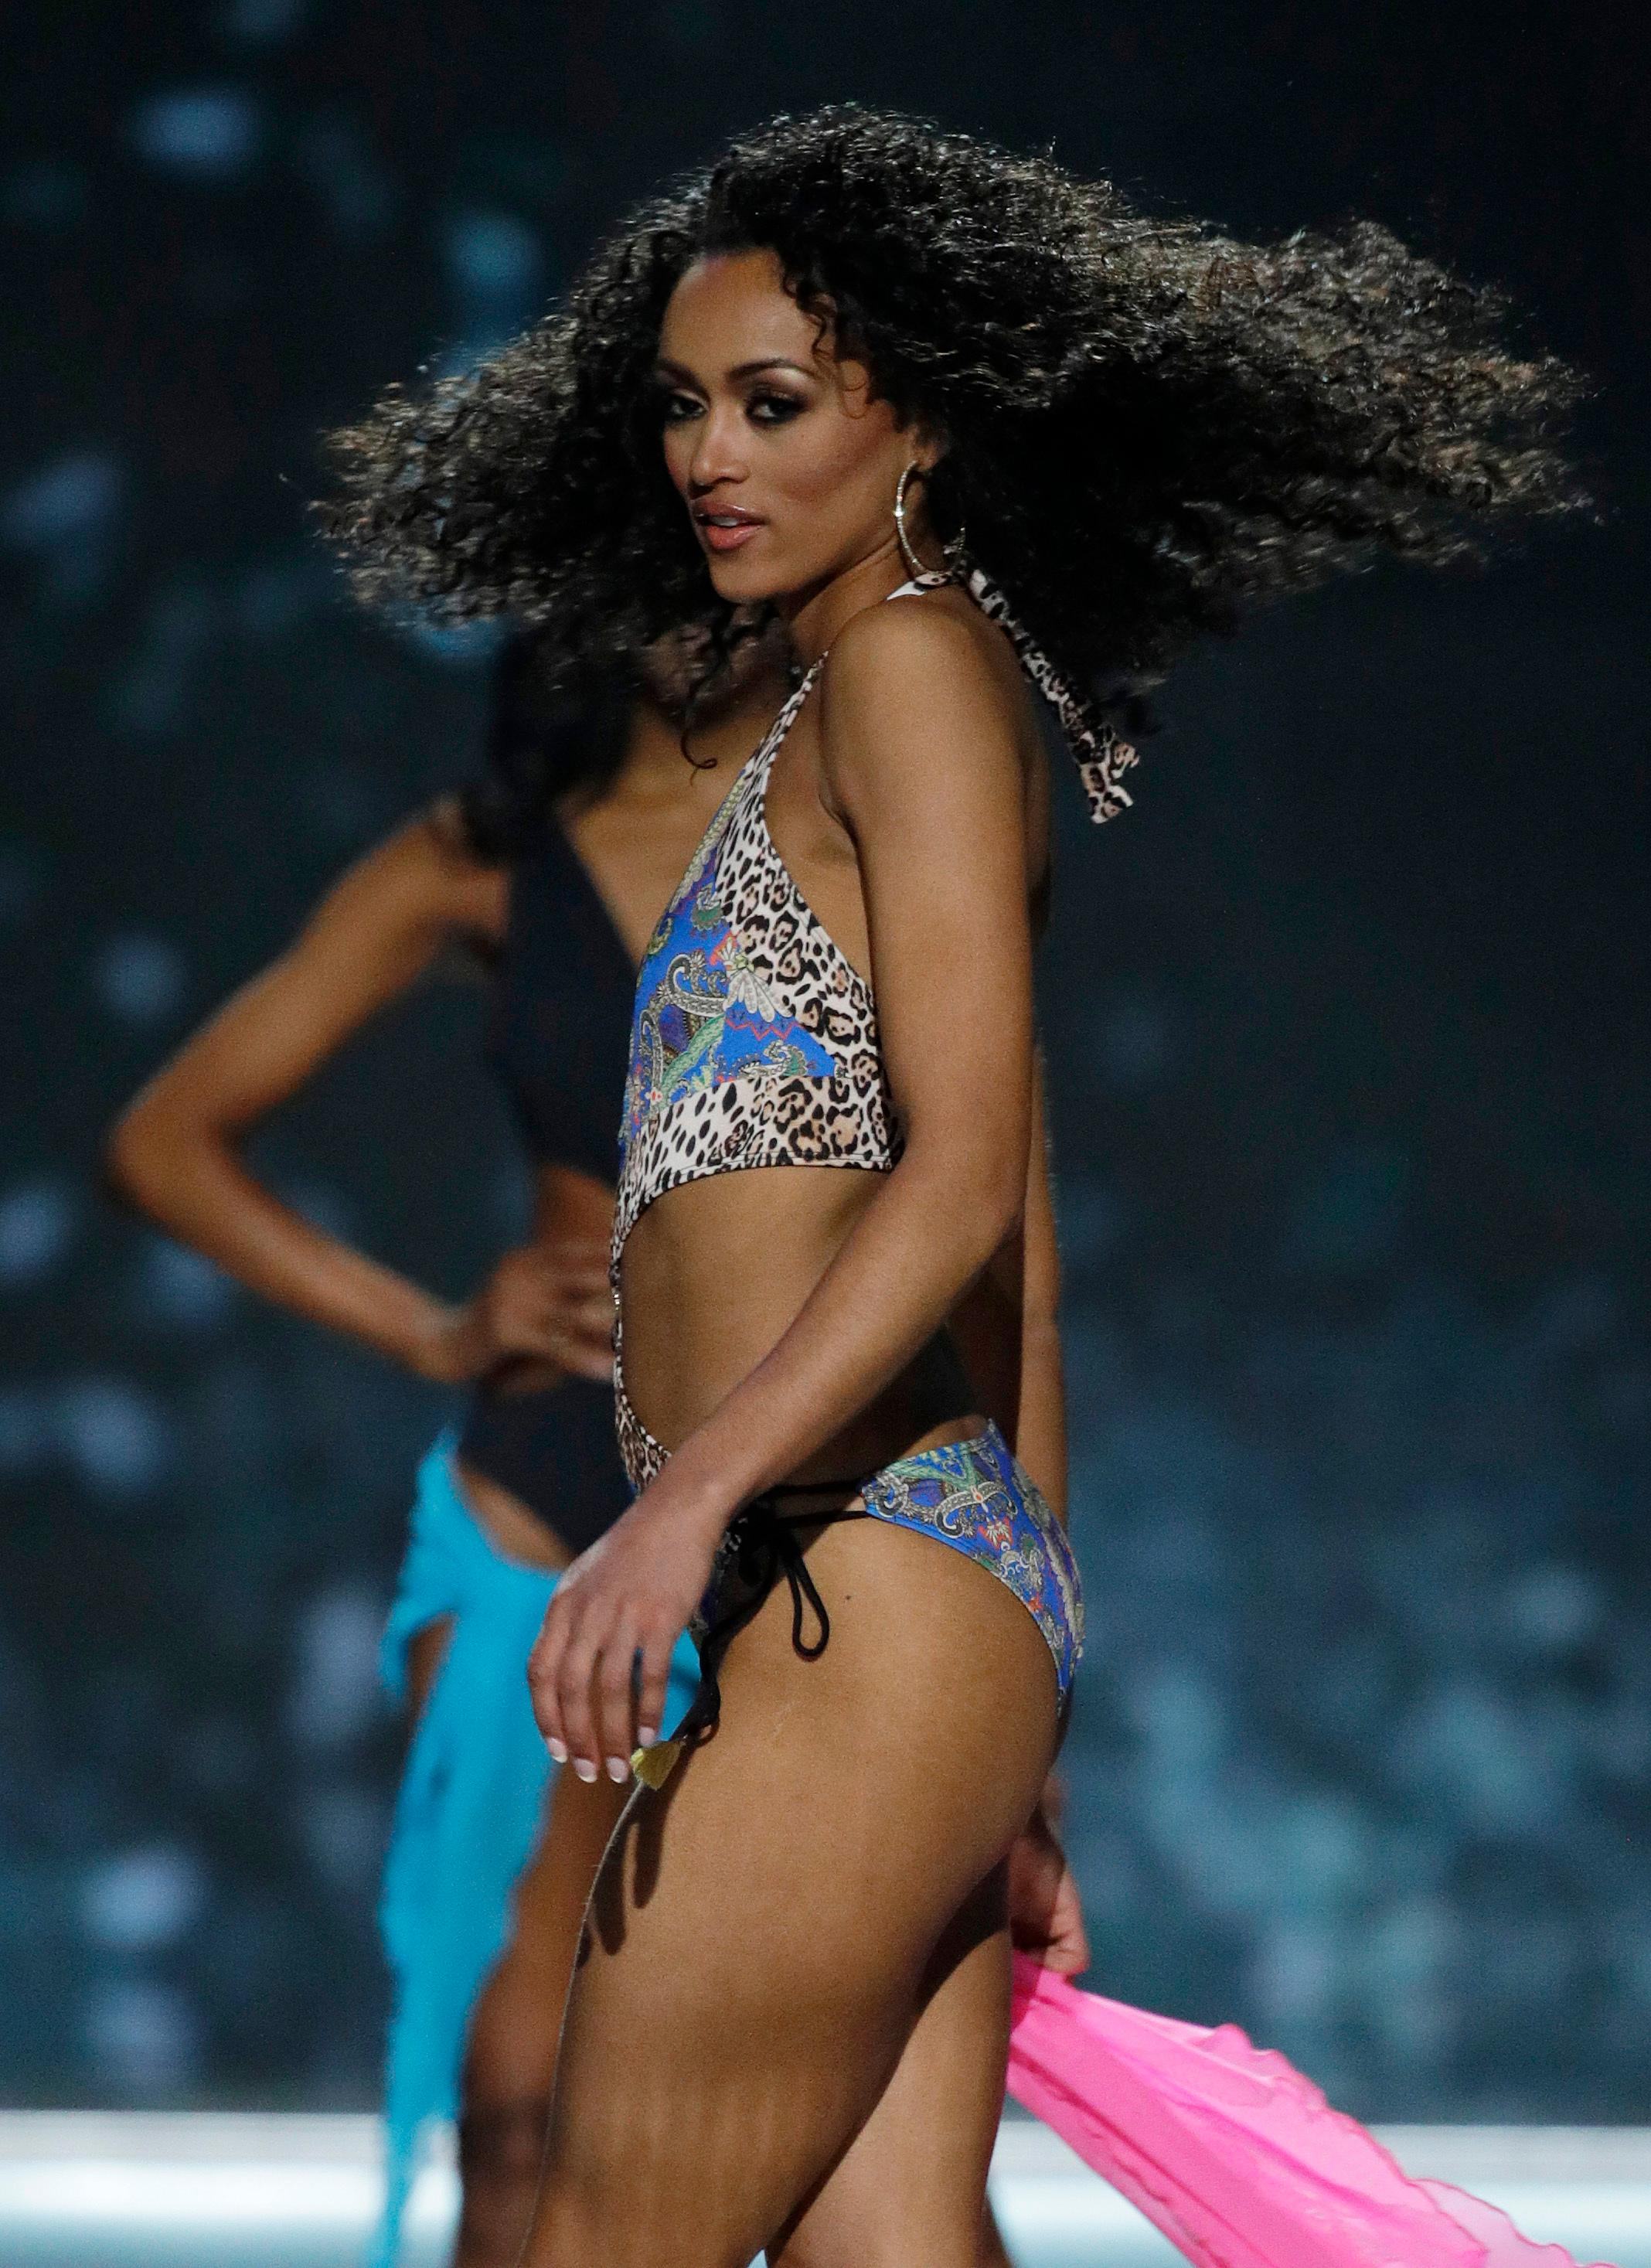 Miss District of Columbia USA Kara McCullough competes in the swimwear competition during the Miss USA contest Sunday, May 14, 2017, in Las Vegas. (AP Photo/John Locher)